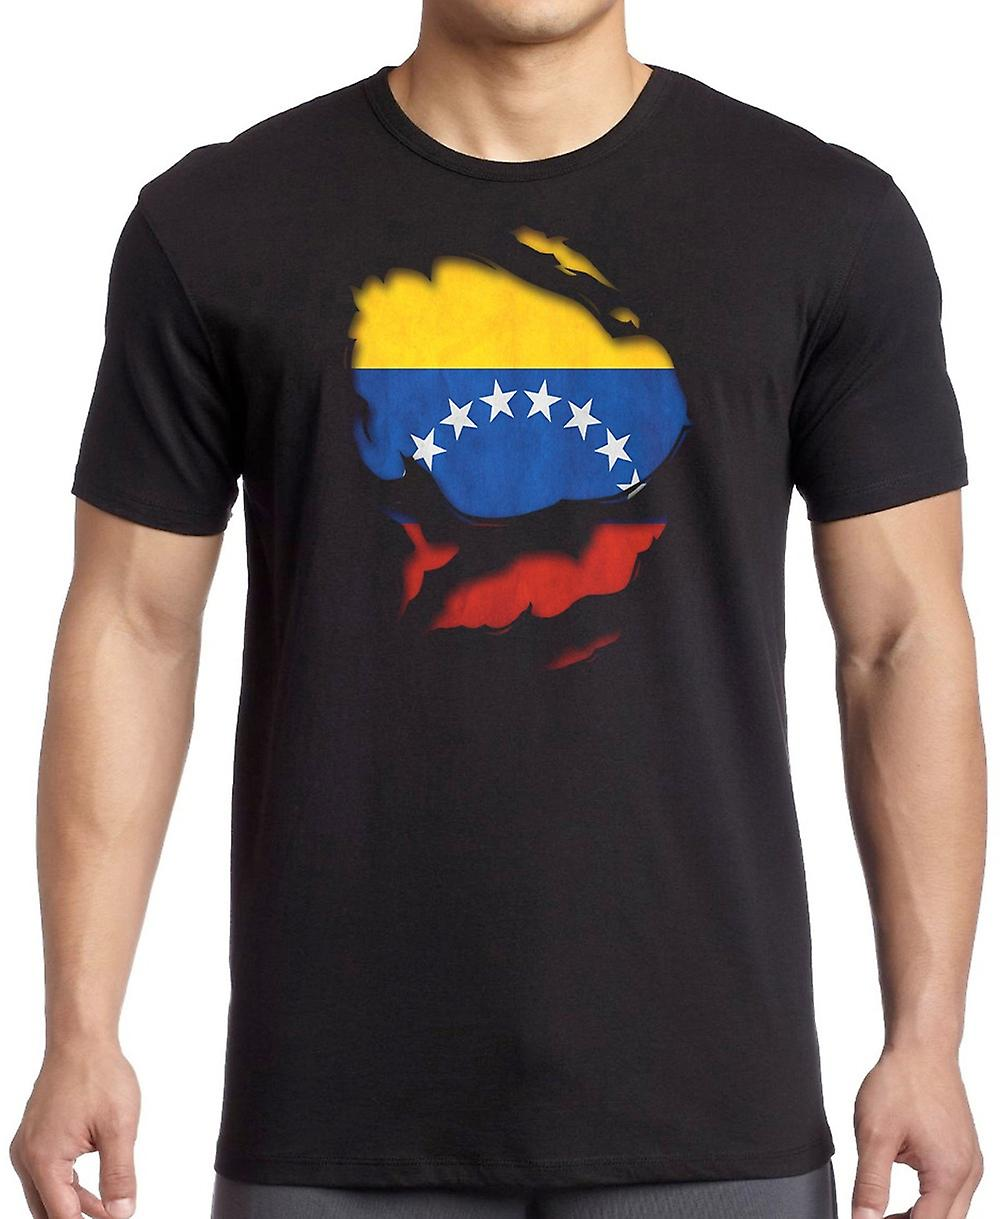 Venezuela Ripped Effect Under Shirt T Shirt